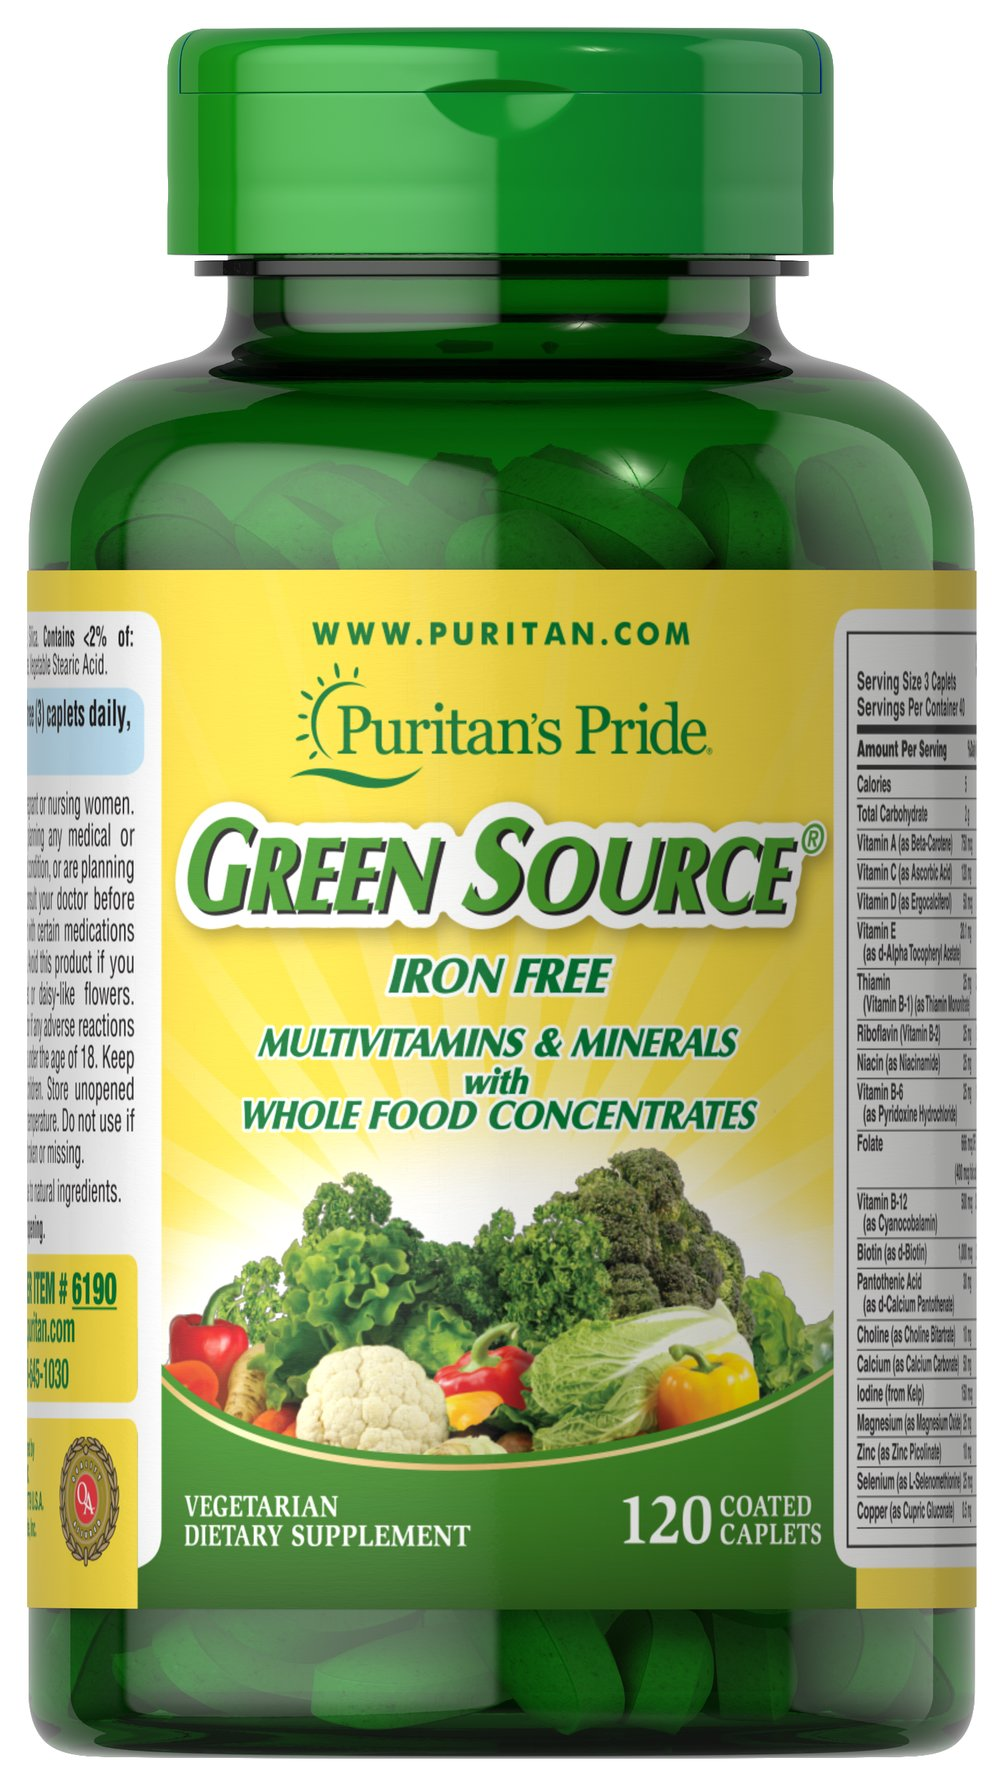 Green Source® Iron Free Multivitamin & Minerals